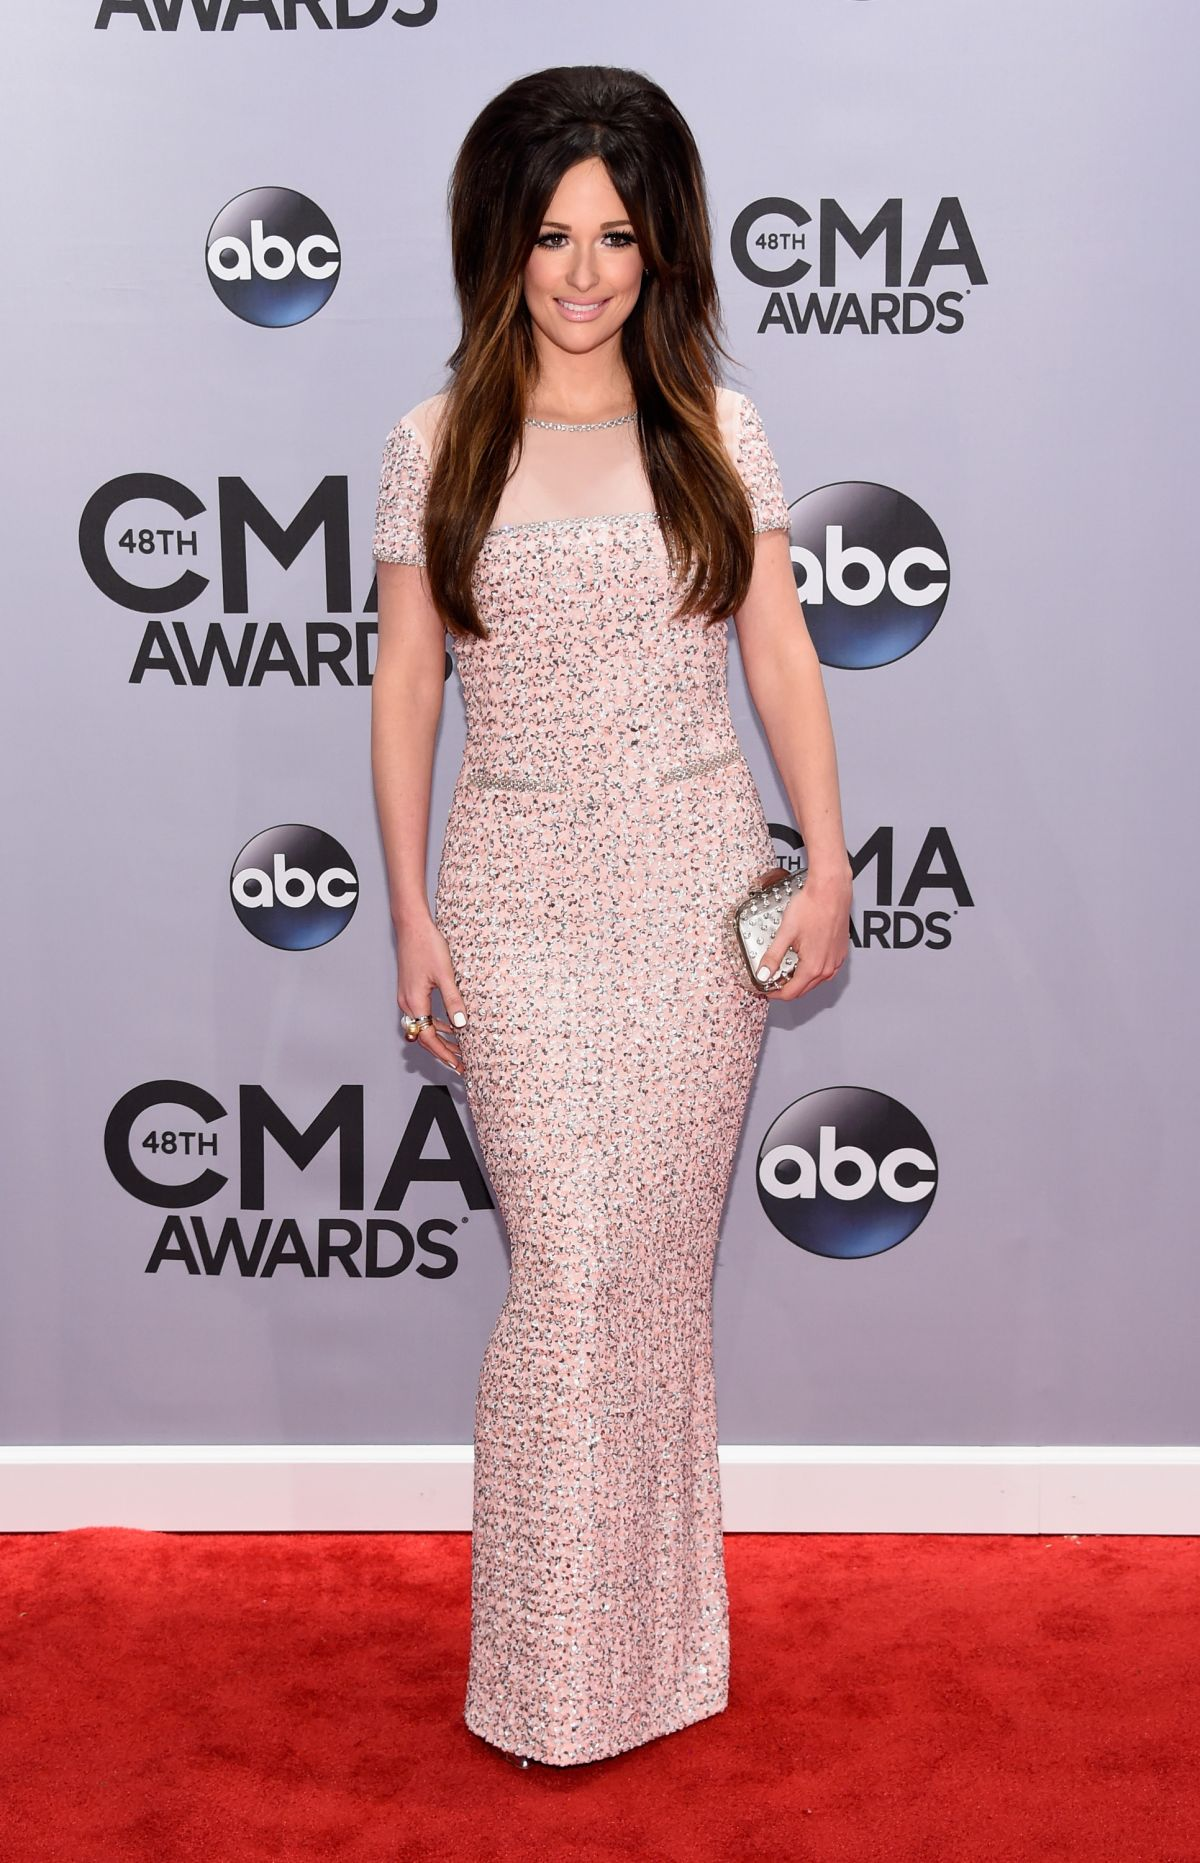 KACEY MUSGRAVES at 2014 CMA Awards in Nashville